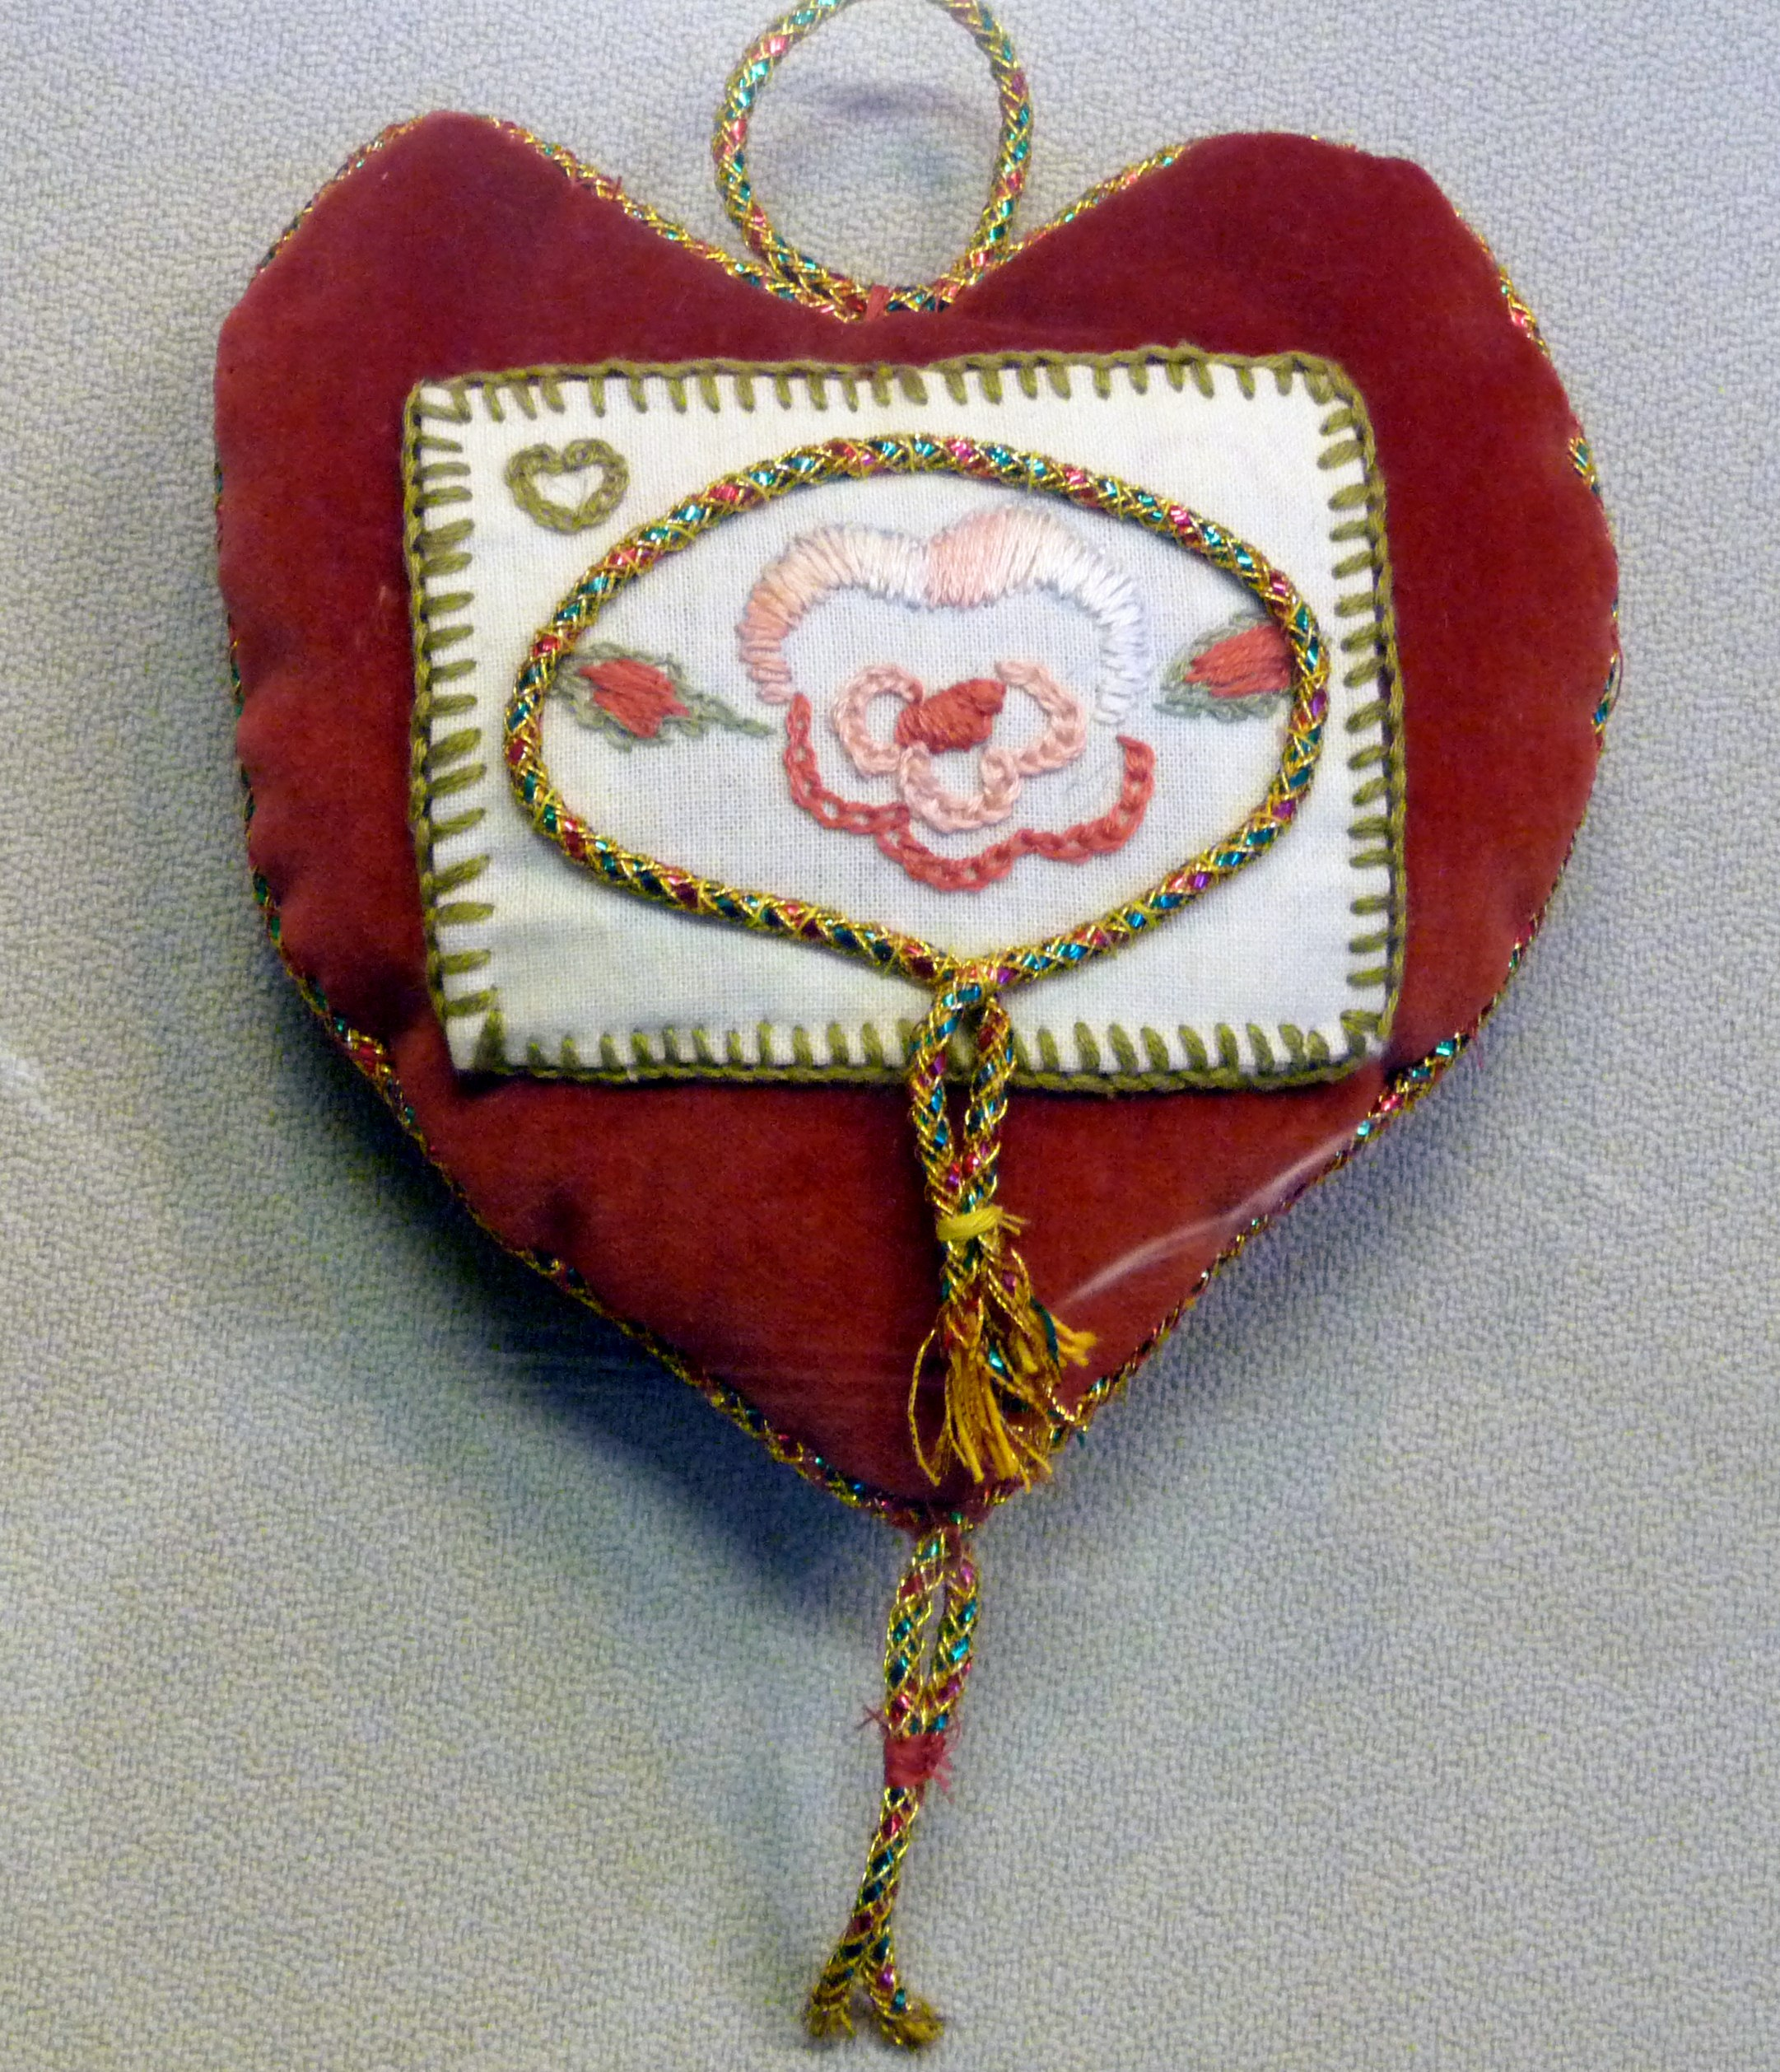 pincushion to commemorate World War 1 made by May Fabia-Cowley